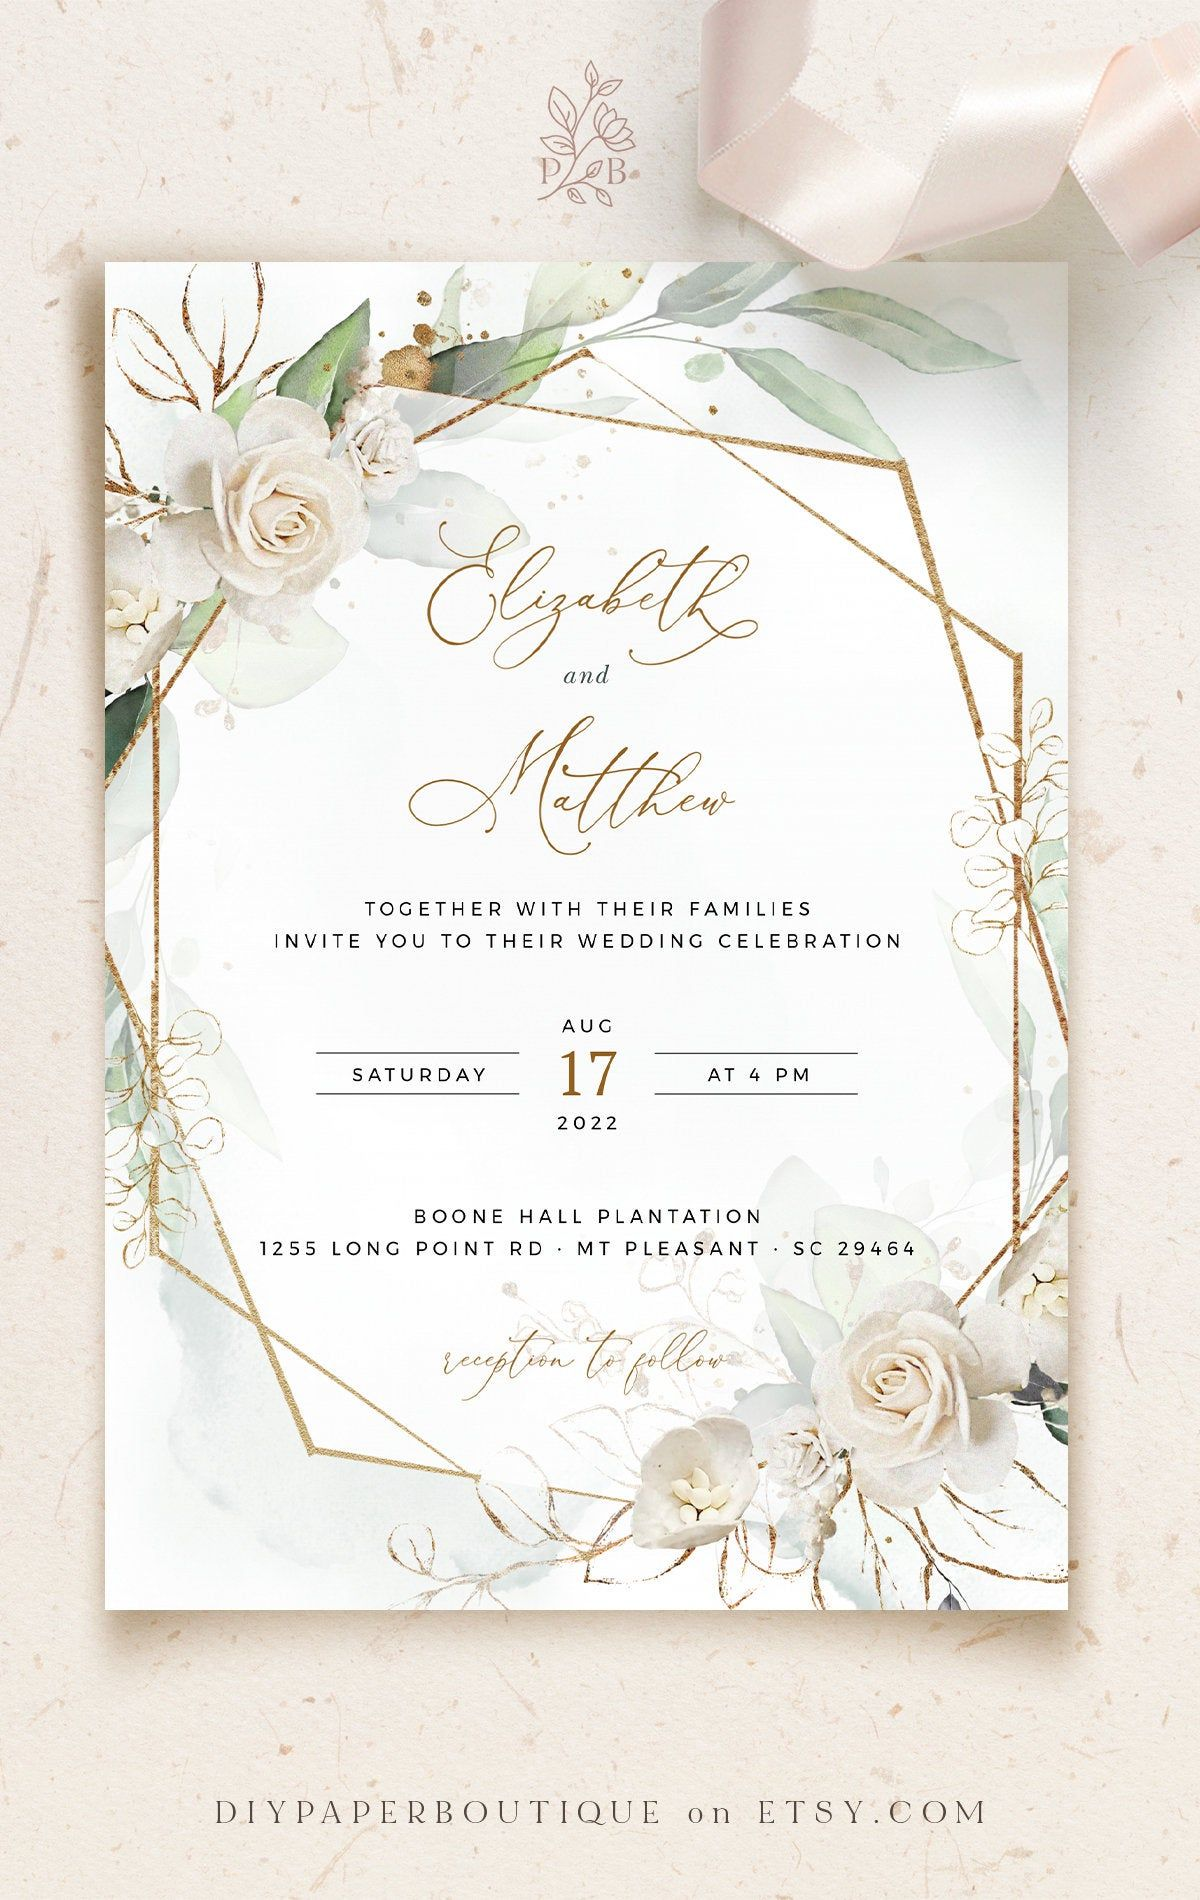 Vintage Wedding Invitation Template Free Pdf Word Psd Apple Pages Illustrator Publisher Outlook Wedding Invitations Printable Templates Free Printable Wedding Invitations Free Wedding Invitation Templates